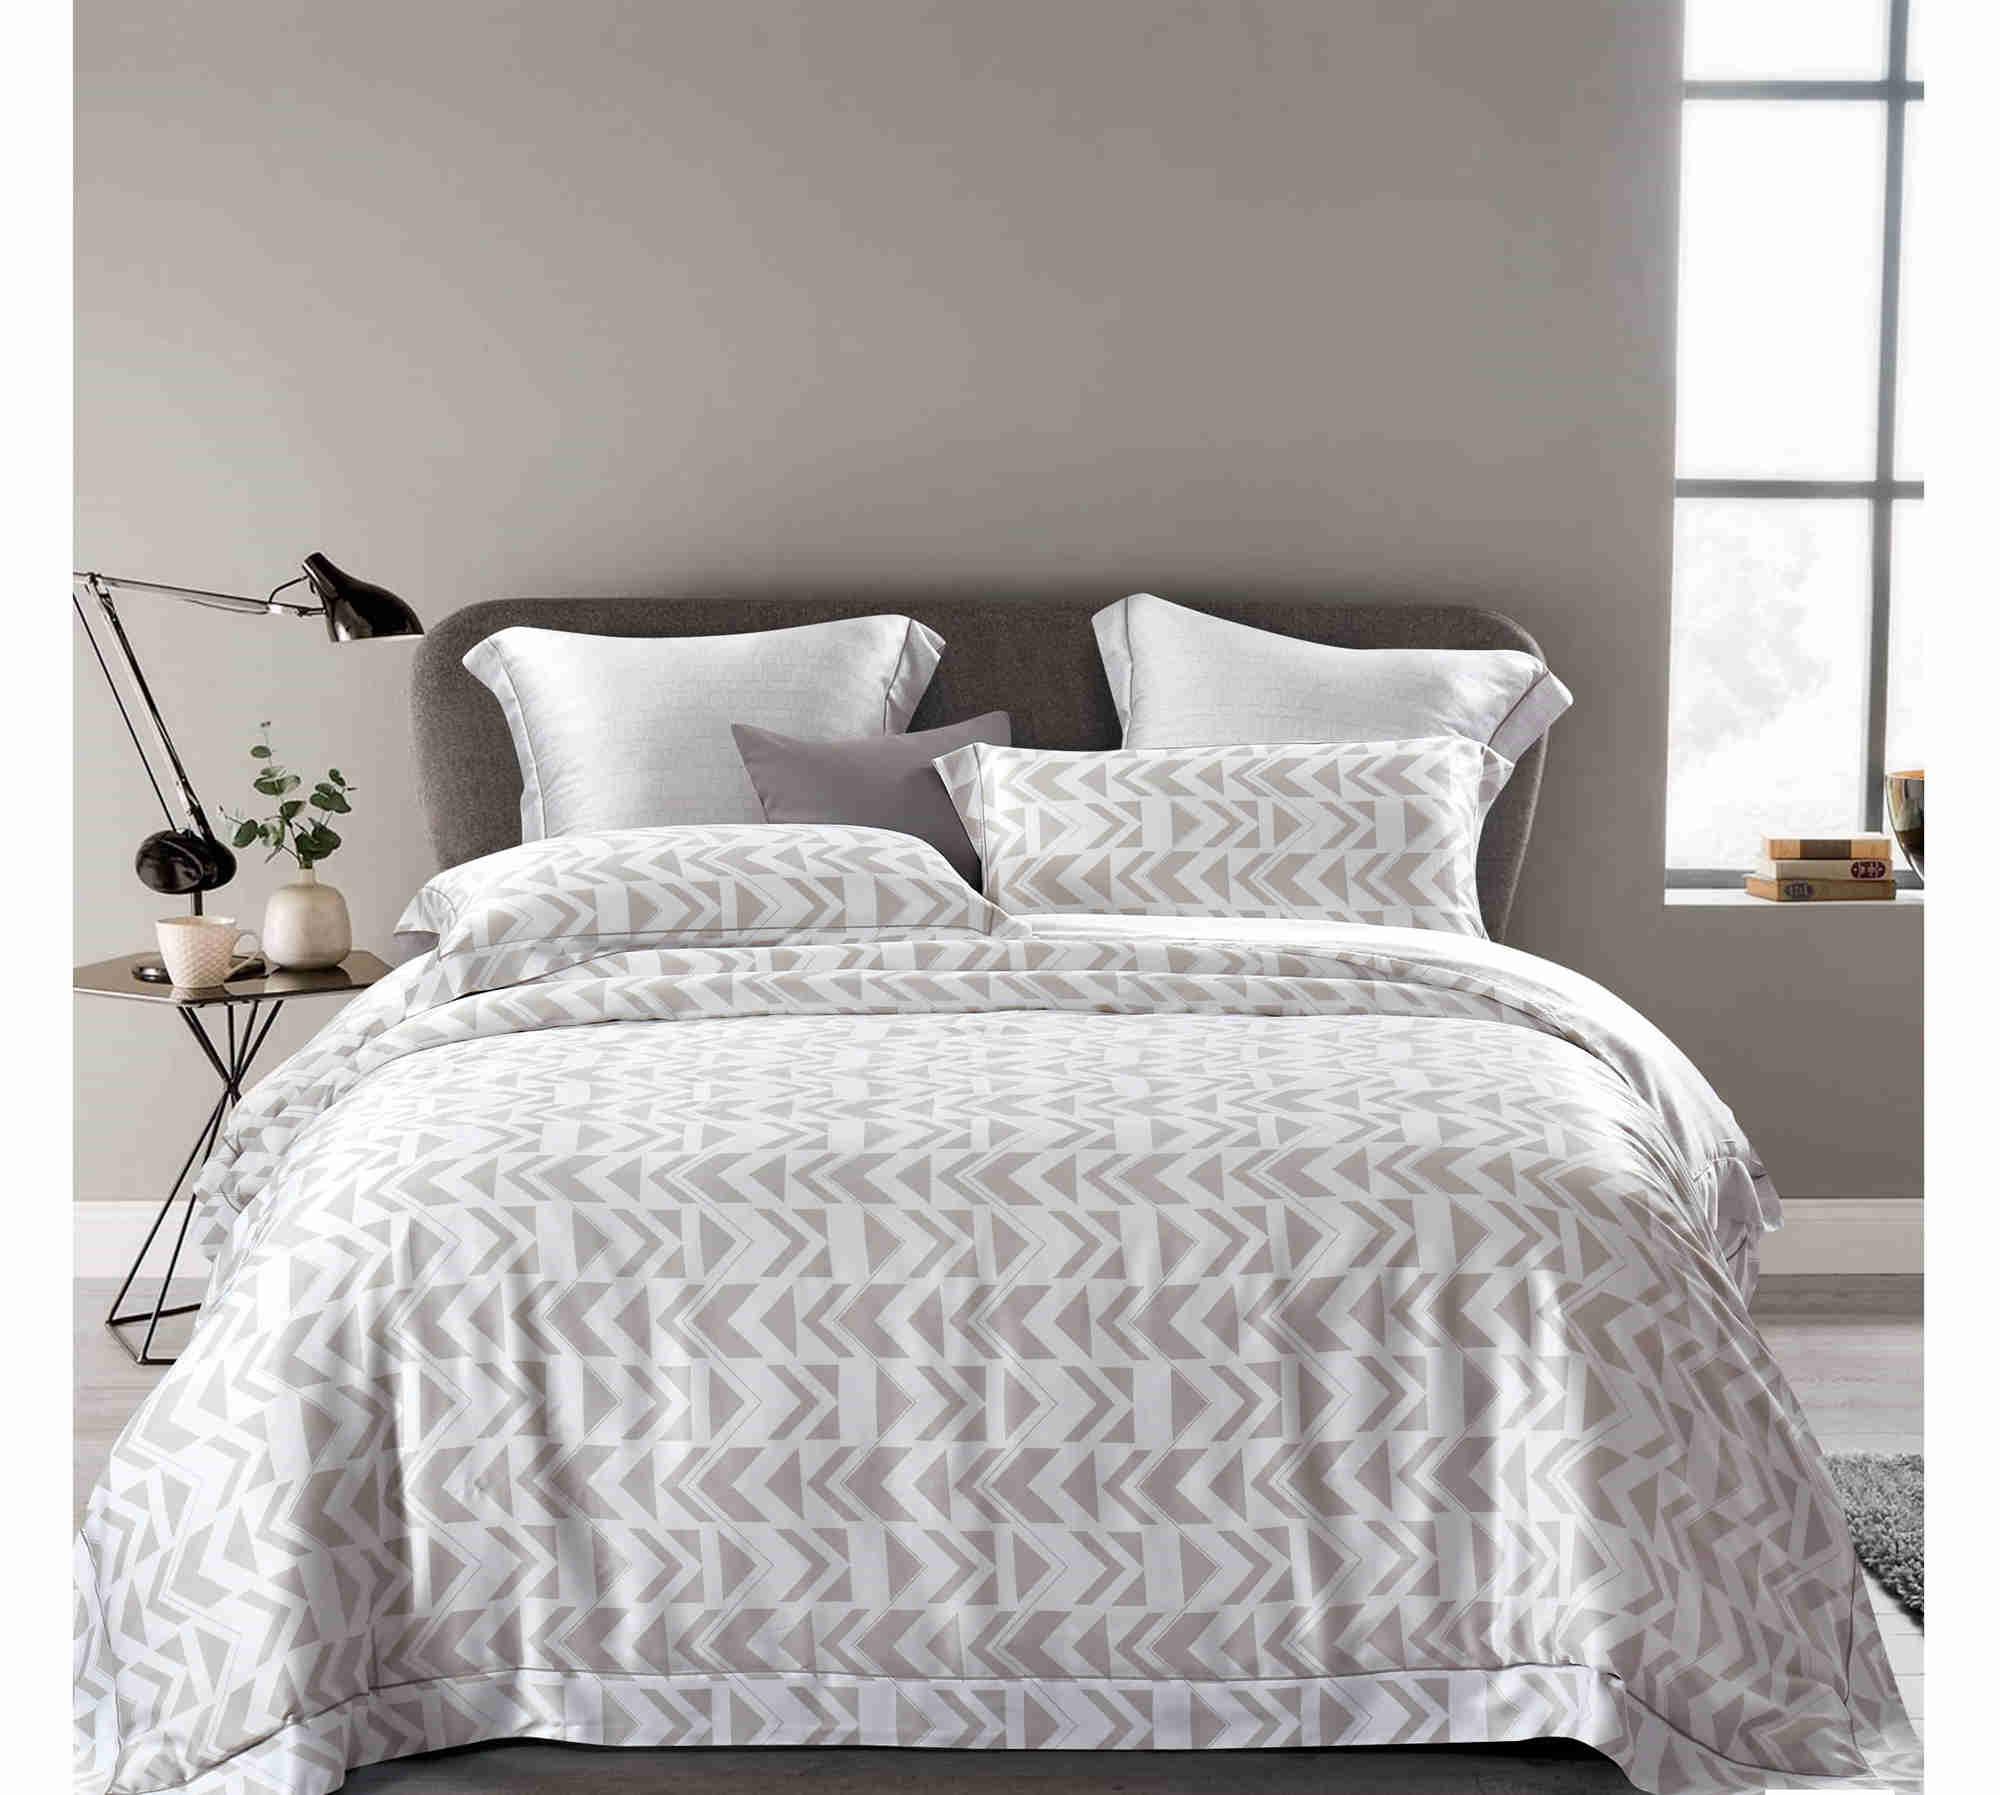 Silky Soft Tencel Bedding set